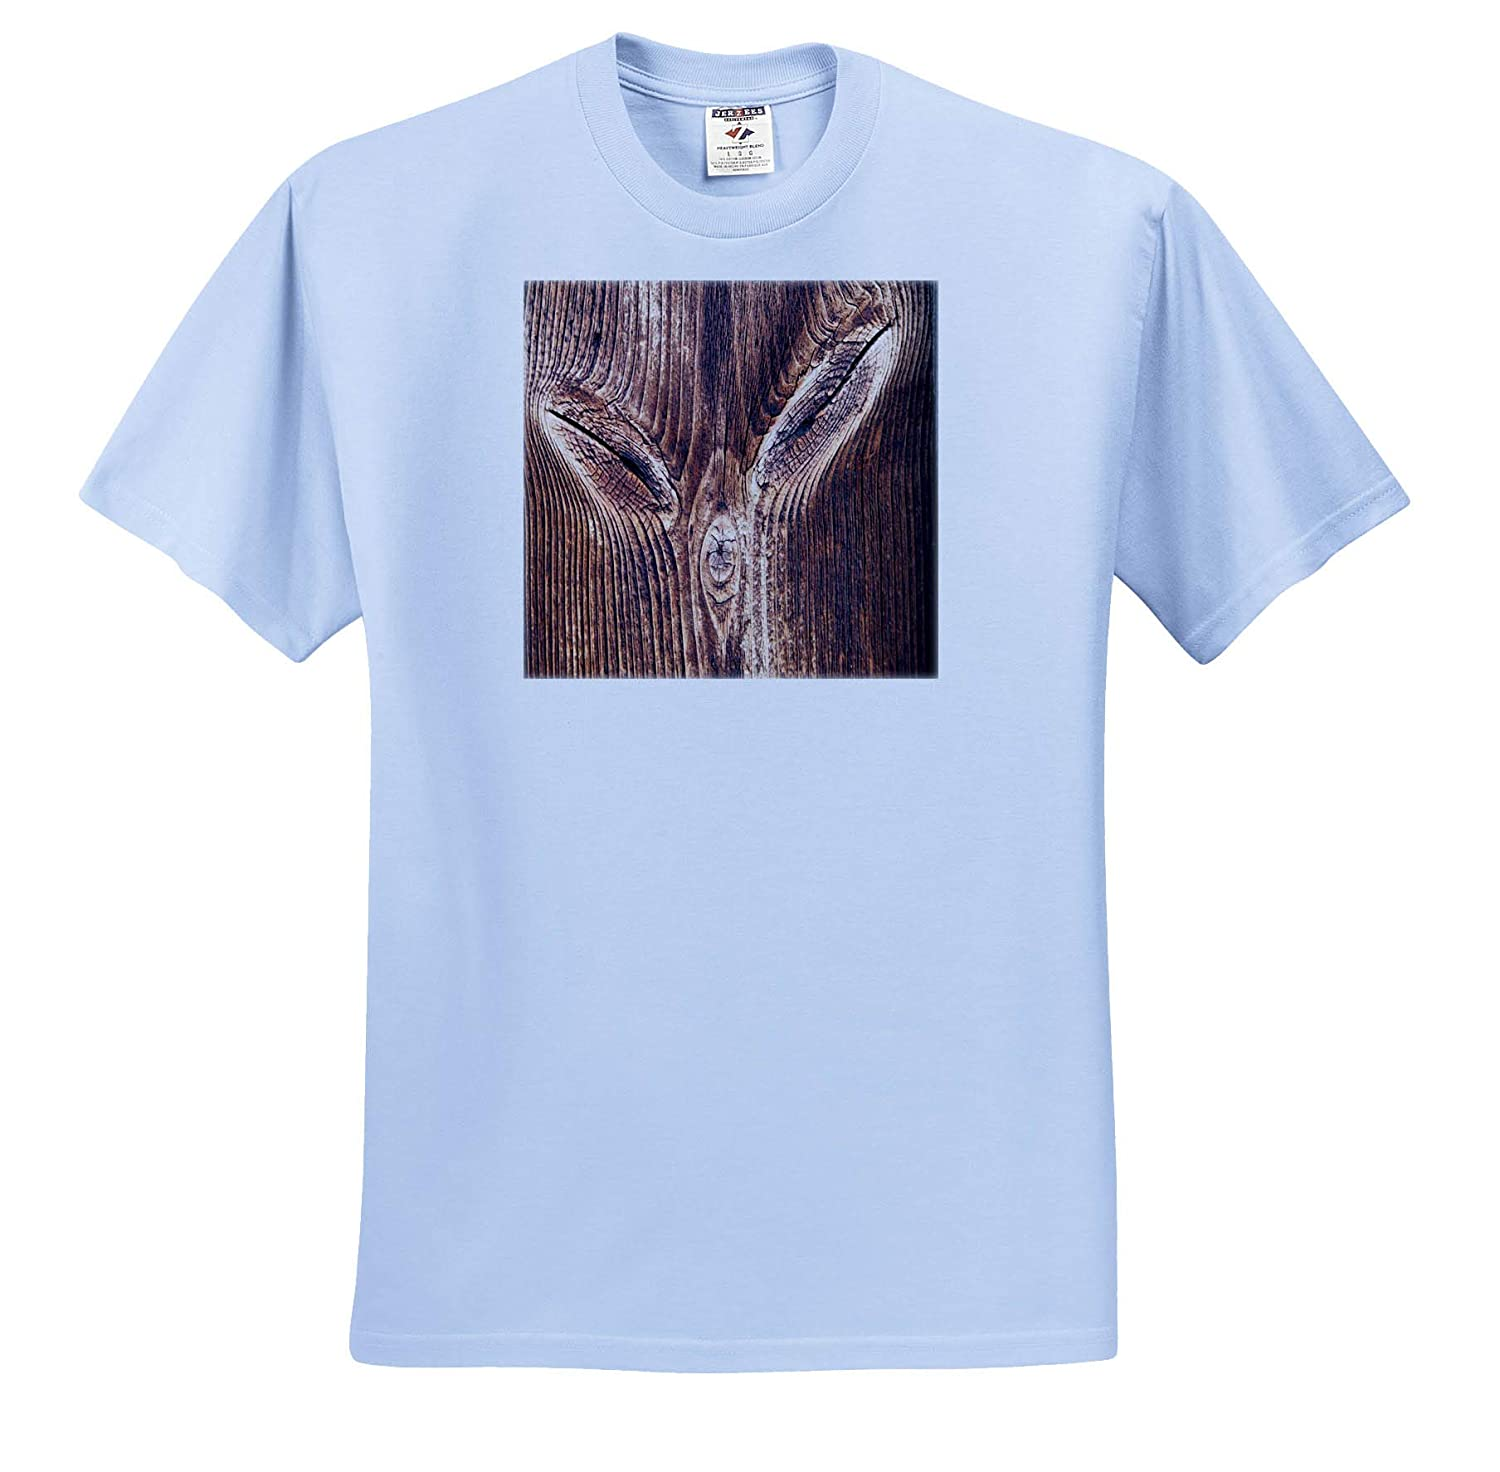 Weathered Woods Image of Wood Trunk with Cats Face Adult T-Shirt XL 3dRose Lens Art by Florene ts/_316011